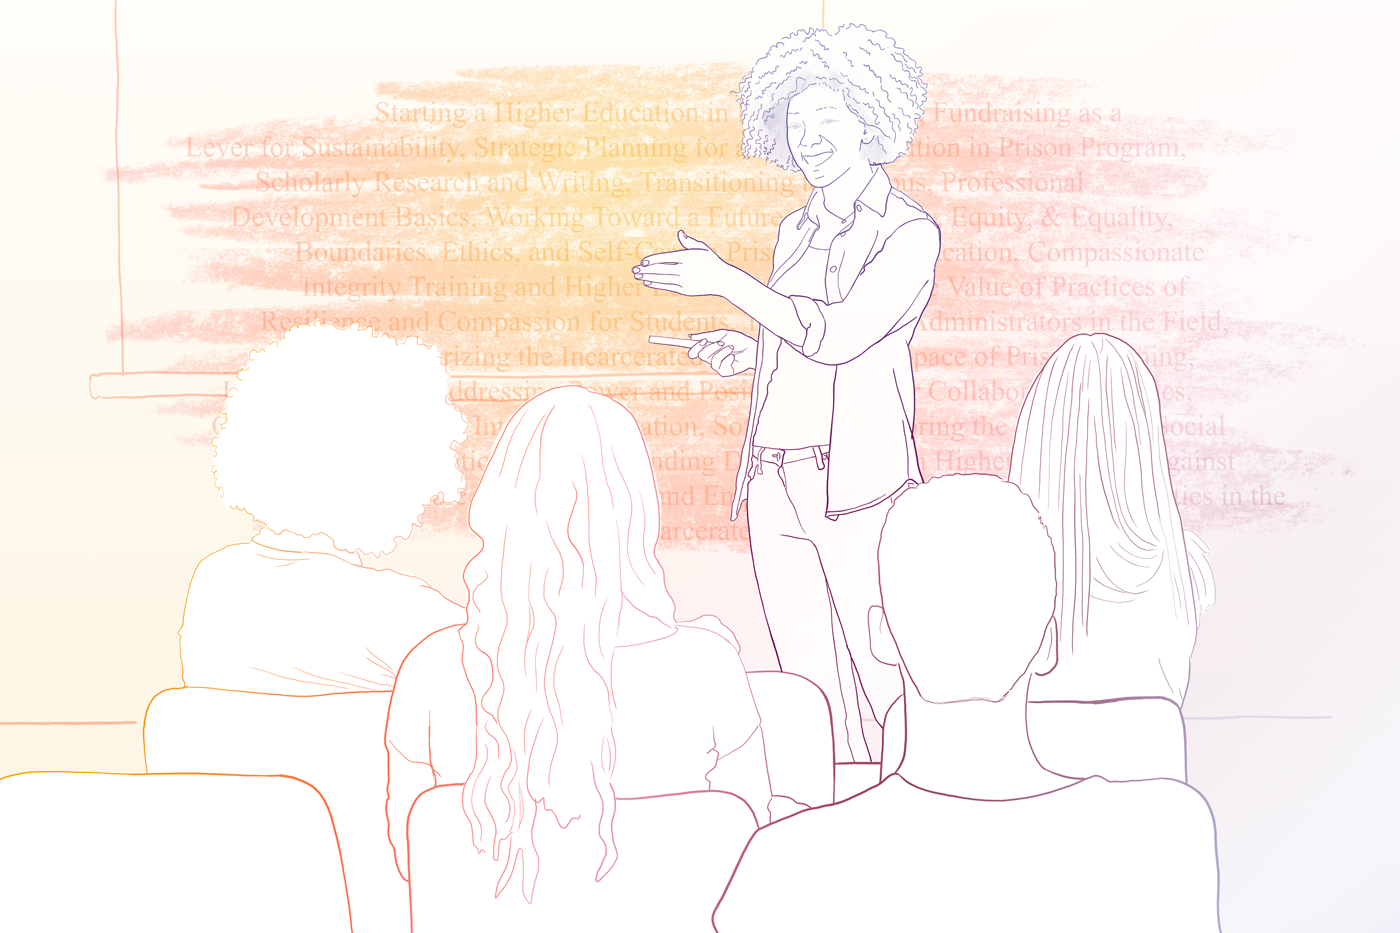 A colorful line drawing depicts a speaker talking to a seated audience